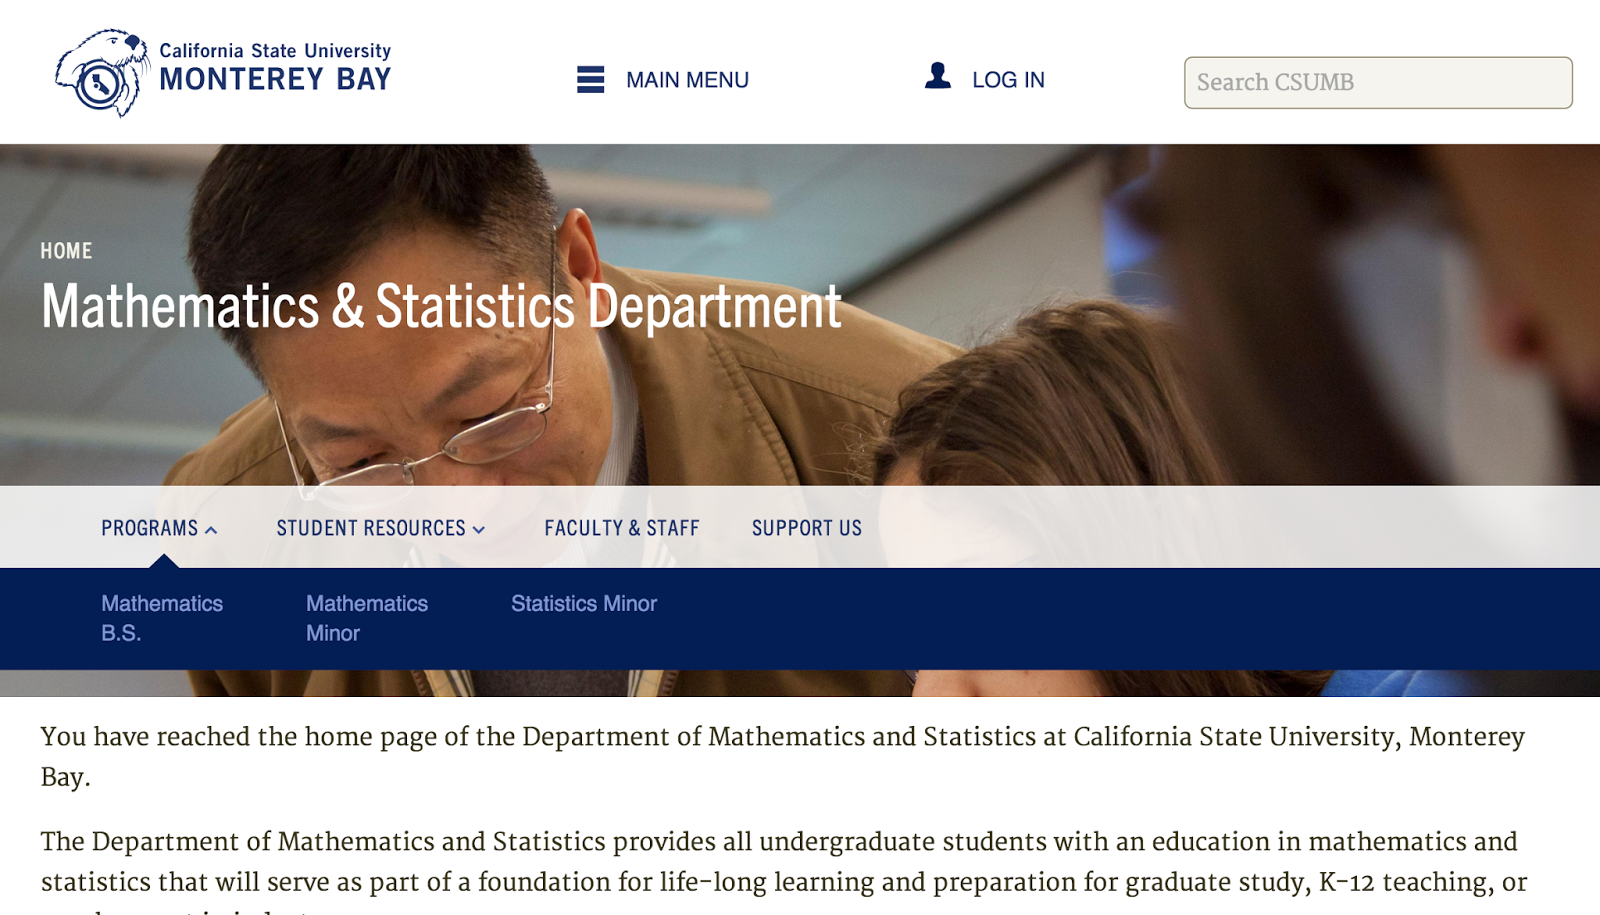 screenshot of a department page